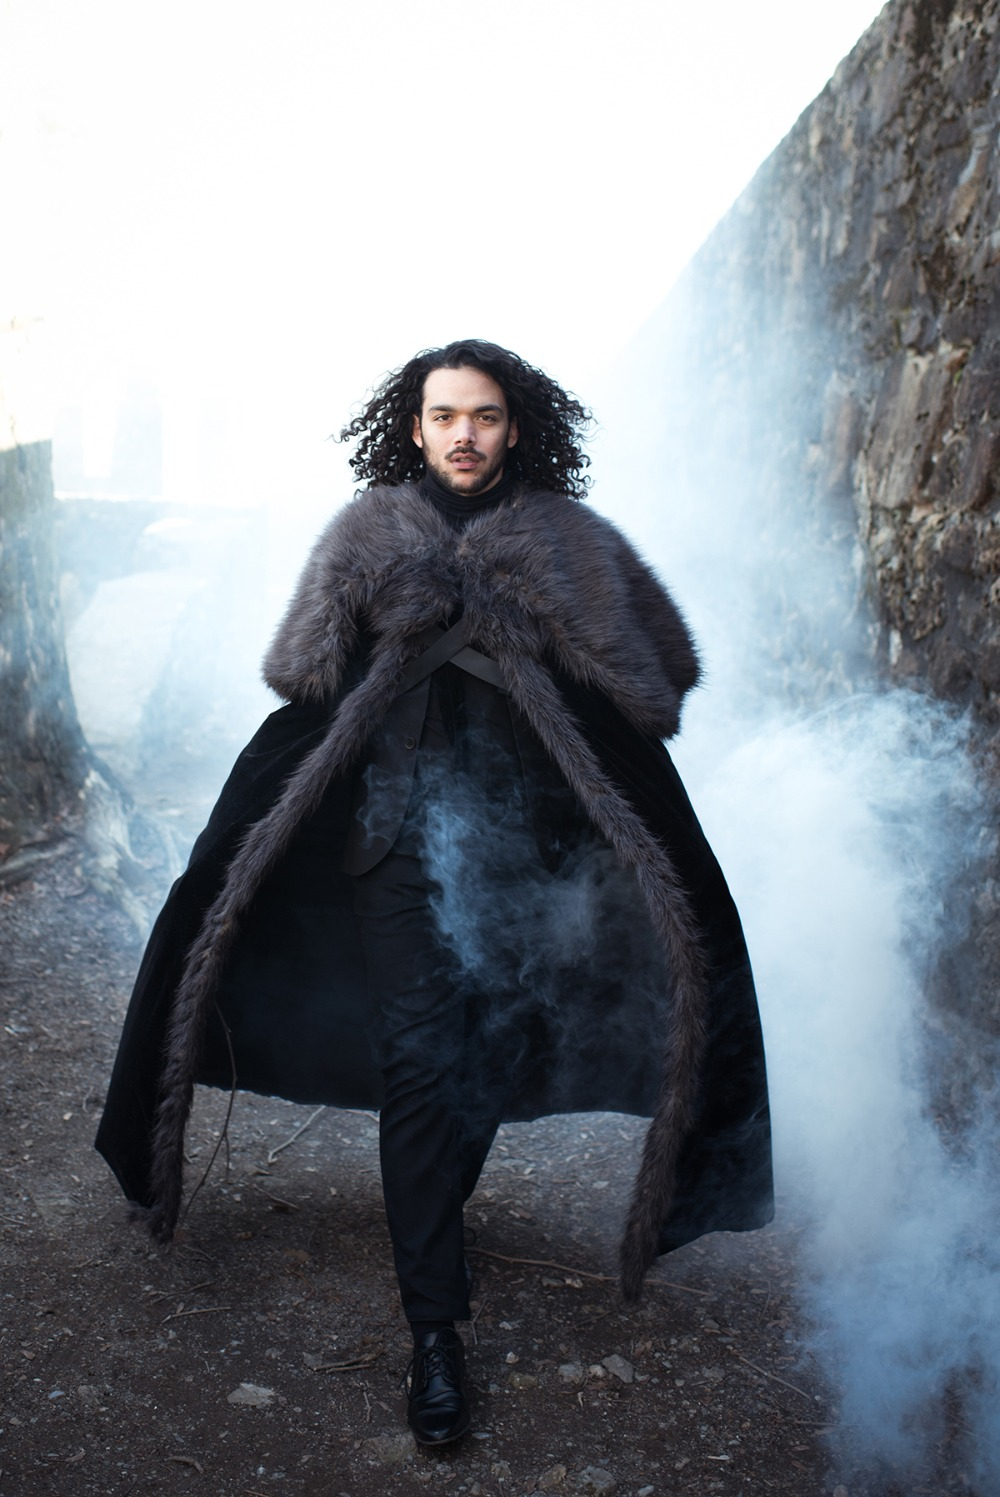 a total black groom's outfit with a fur coverup is a gorgeous idea for a modern take on Jon Snow's look